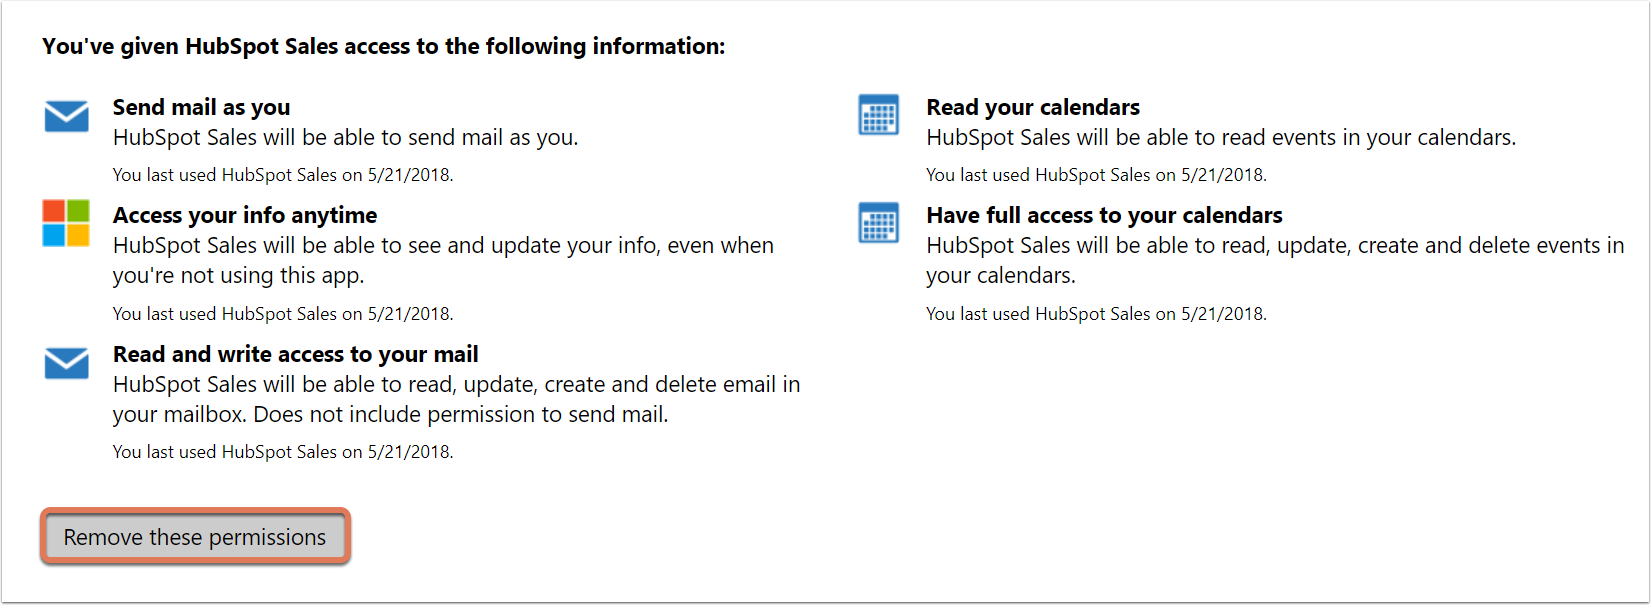 remove-these-permissions